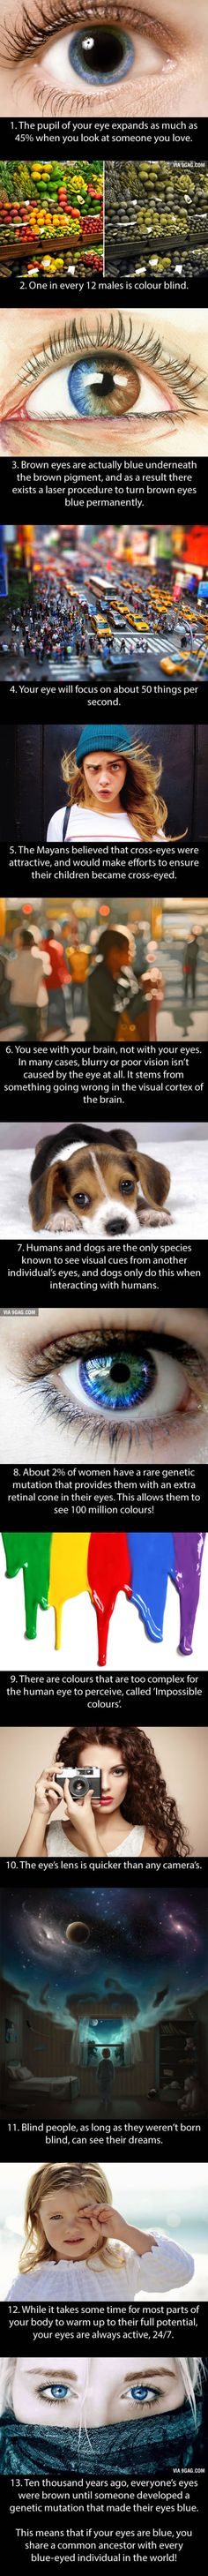 13 incredible facts about your eyes